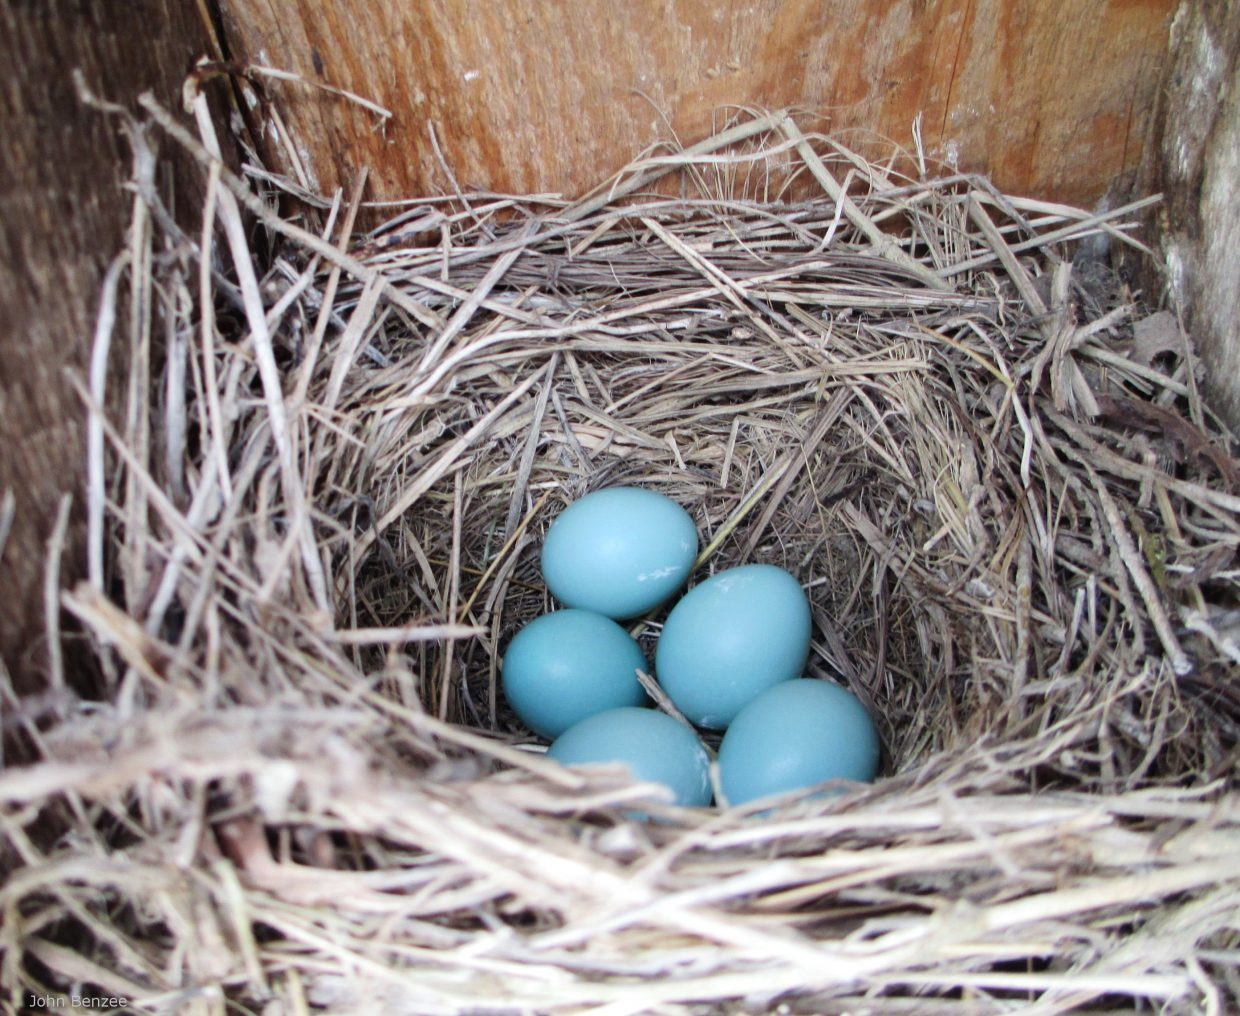 Bluebird eggs in nest. © John Benzee